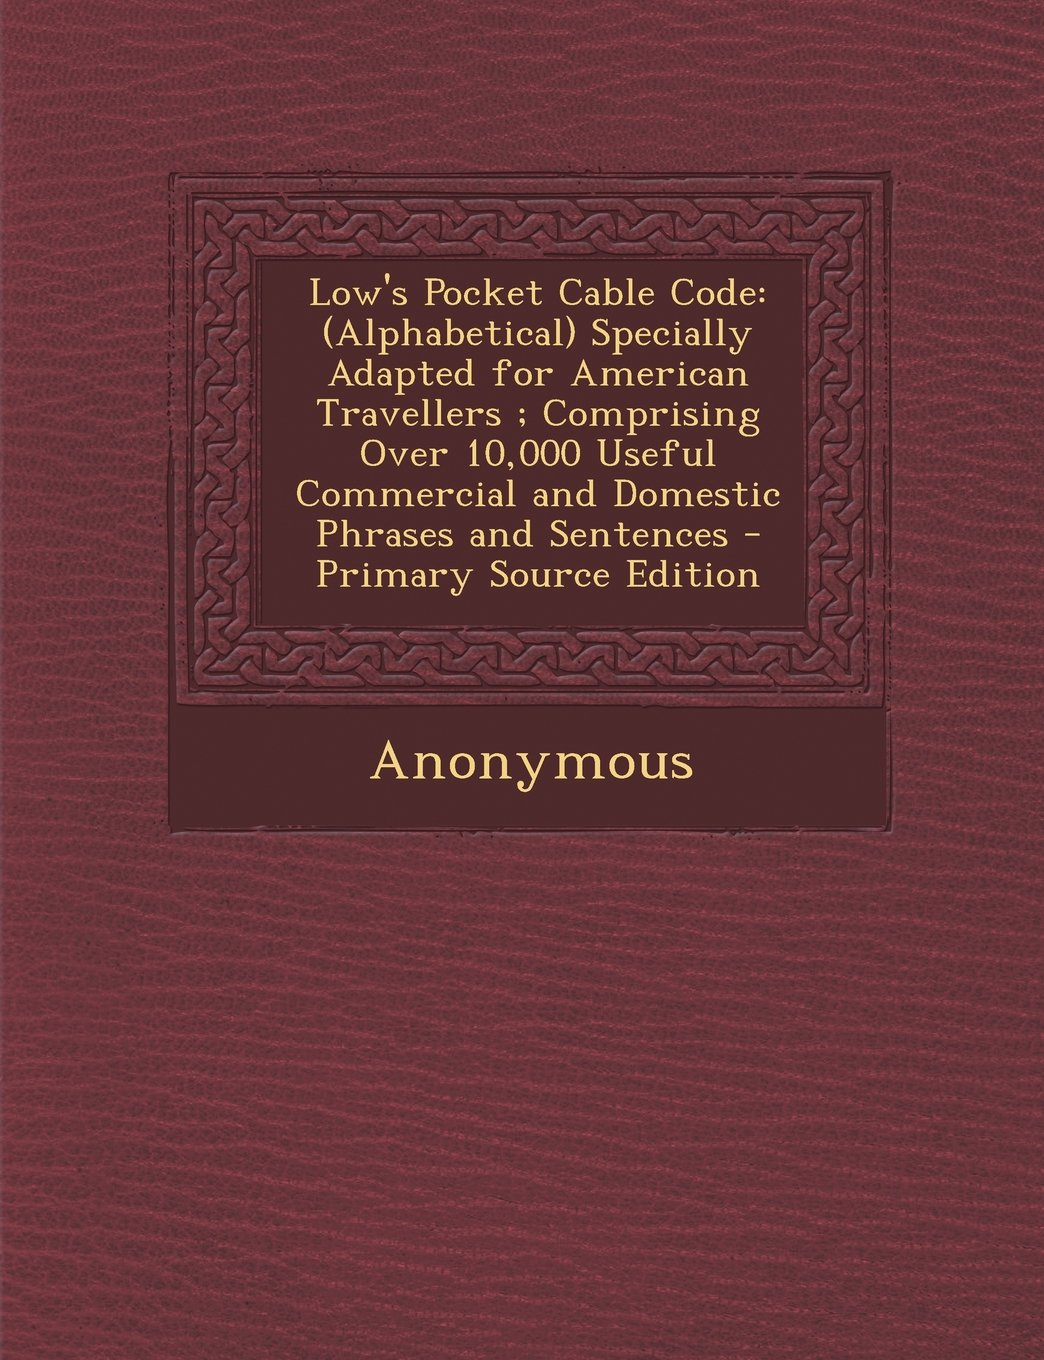 Low's Pocket Cable Code: (Alphabetical) Specially Adapted for American Travellers ; Comprising Over 10,000 Useful Commercial and Domestic Phrases and Sentences PDF